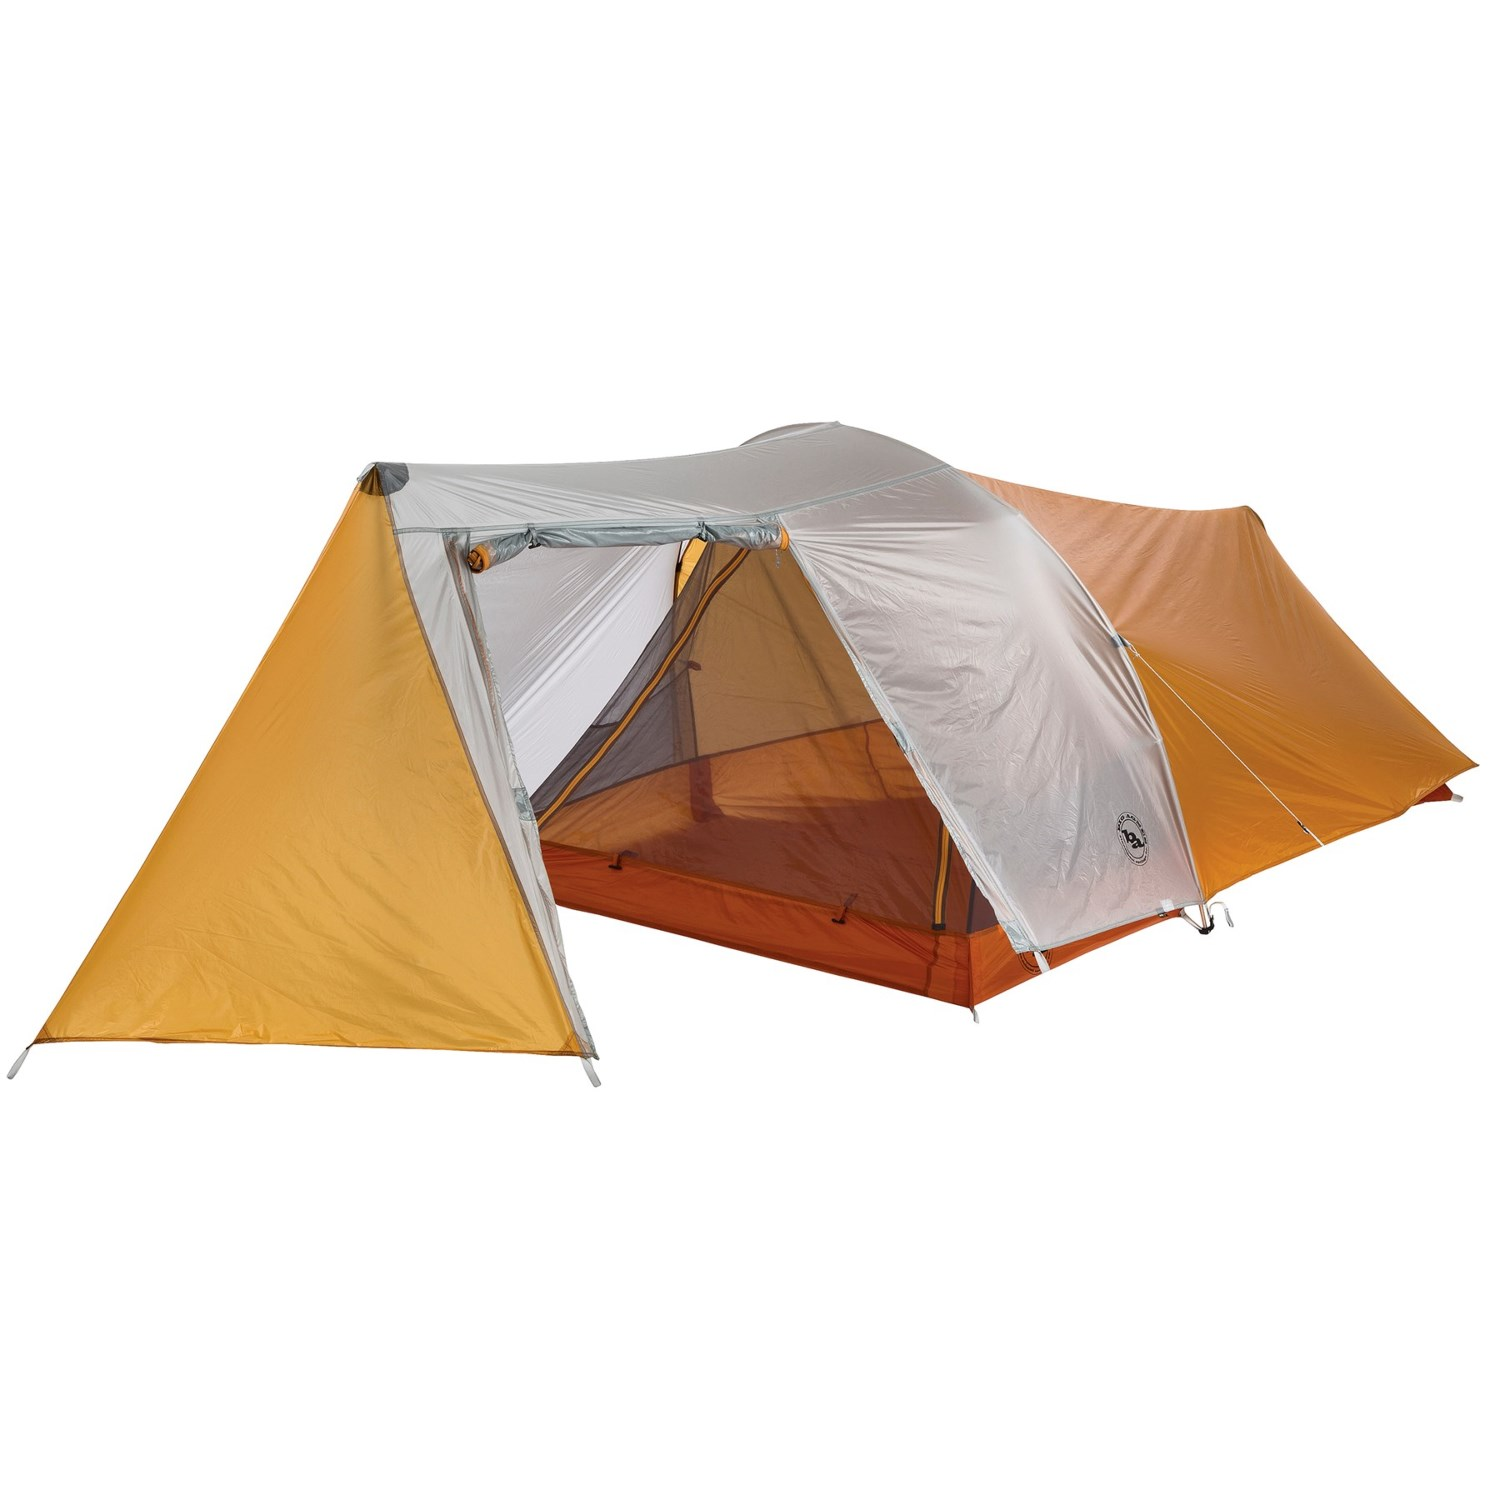 Big Agnes Bitter Springs UL 2 Tent with Footprint - 2-Person 3-Season  sc 1 st  Sierra Trading Post & Big Agnes Bitter Springs UL 2 Tent with Footprint - 2-Person 3 ...